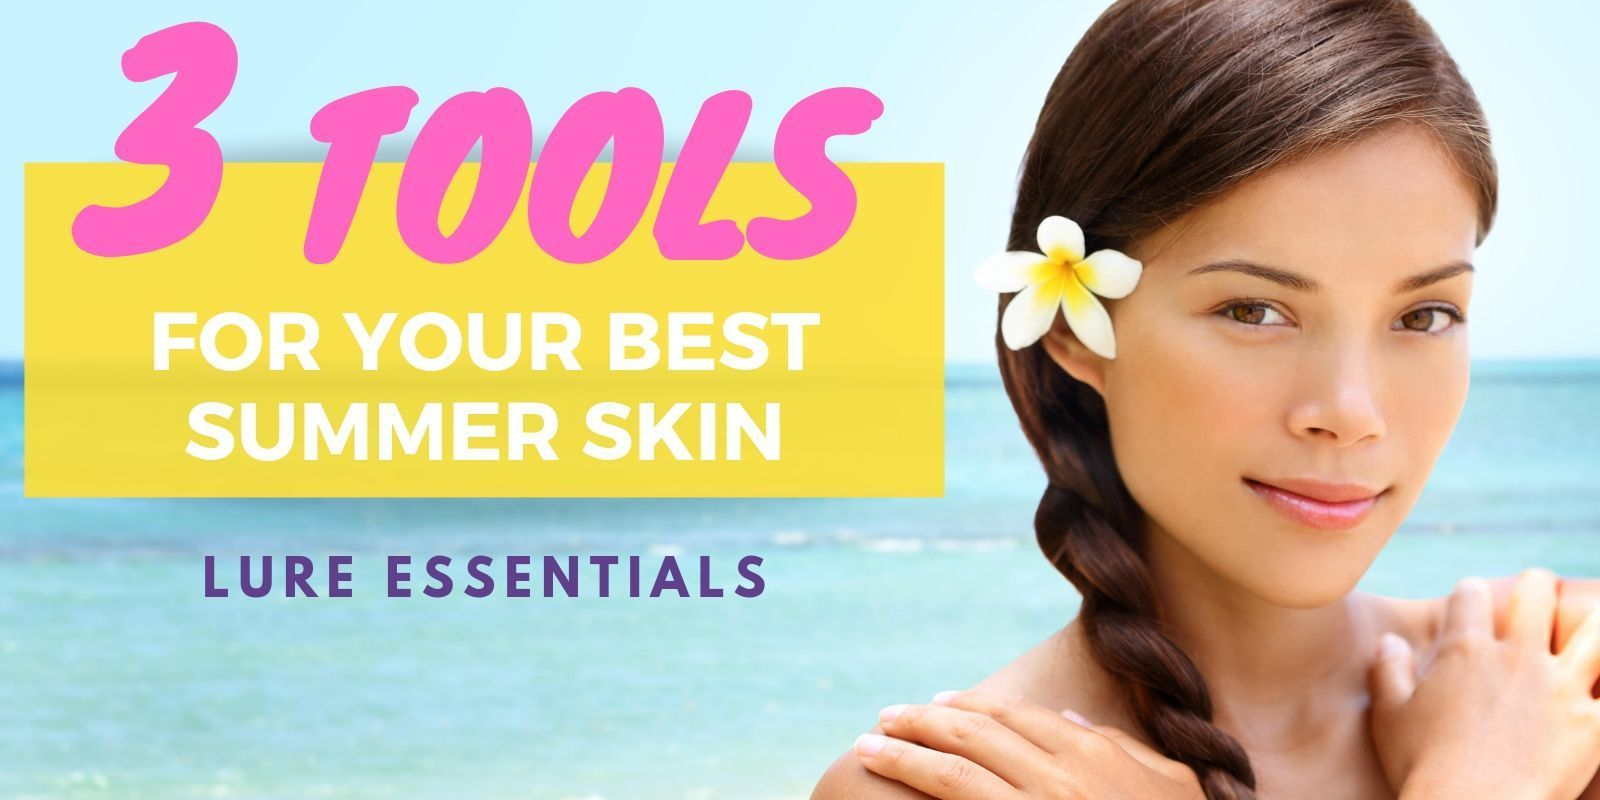 Three Tools for Your Best Summer Skin - Lure Essentials